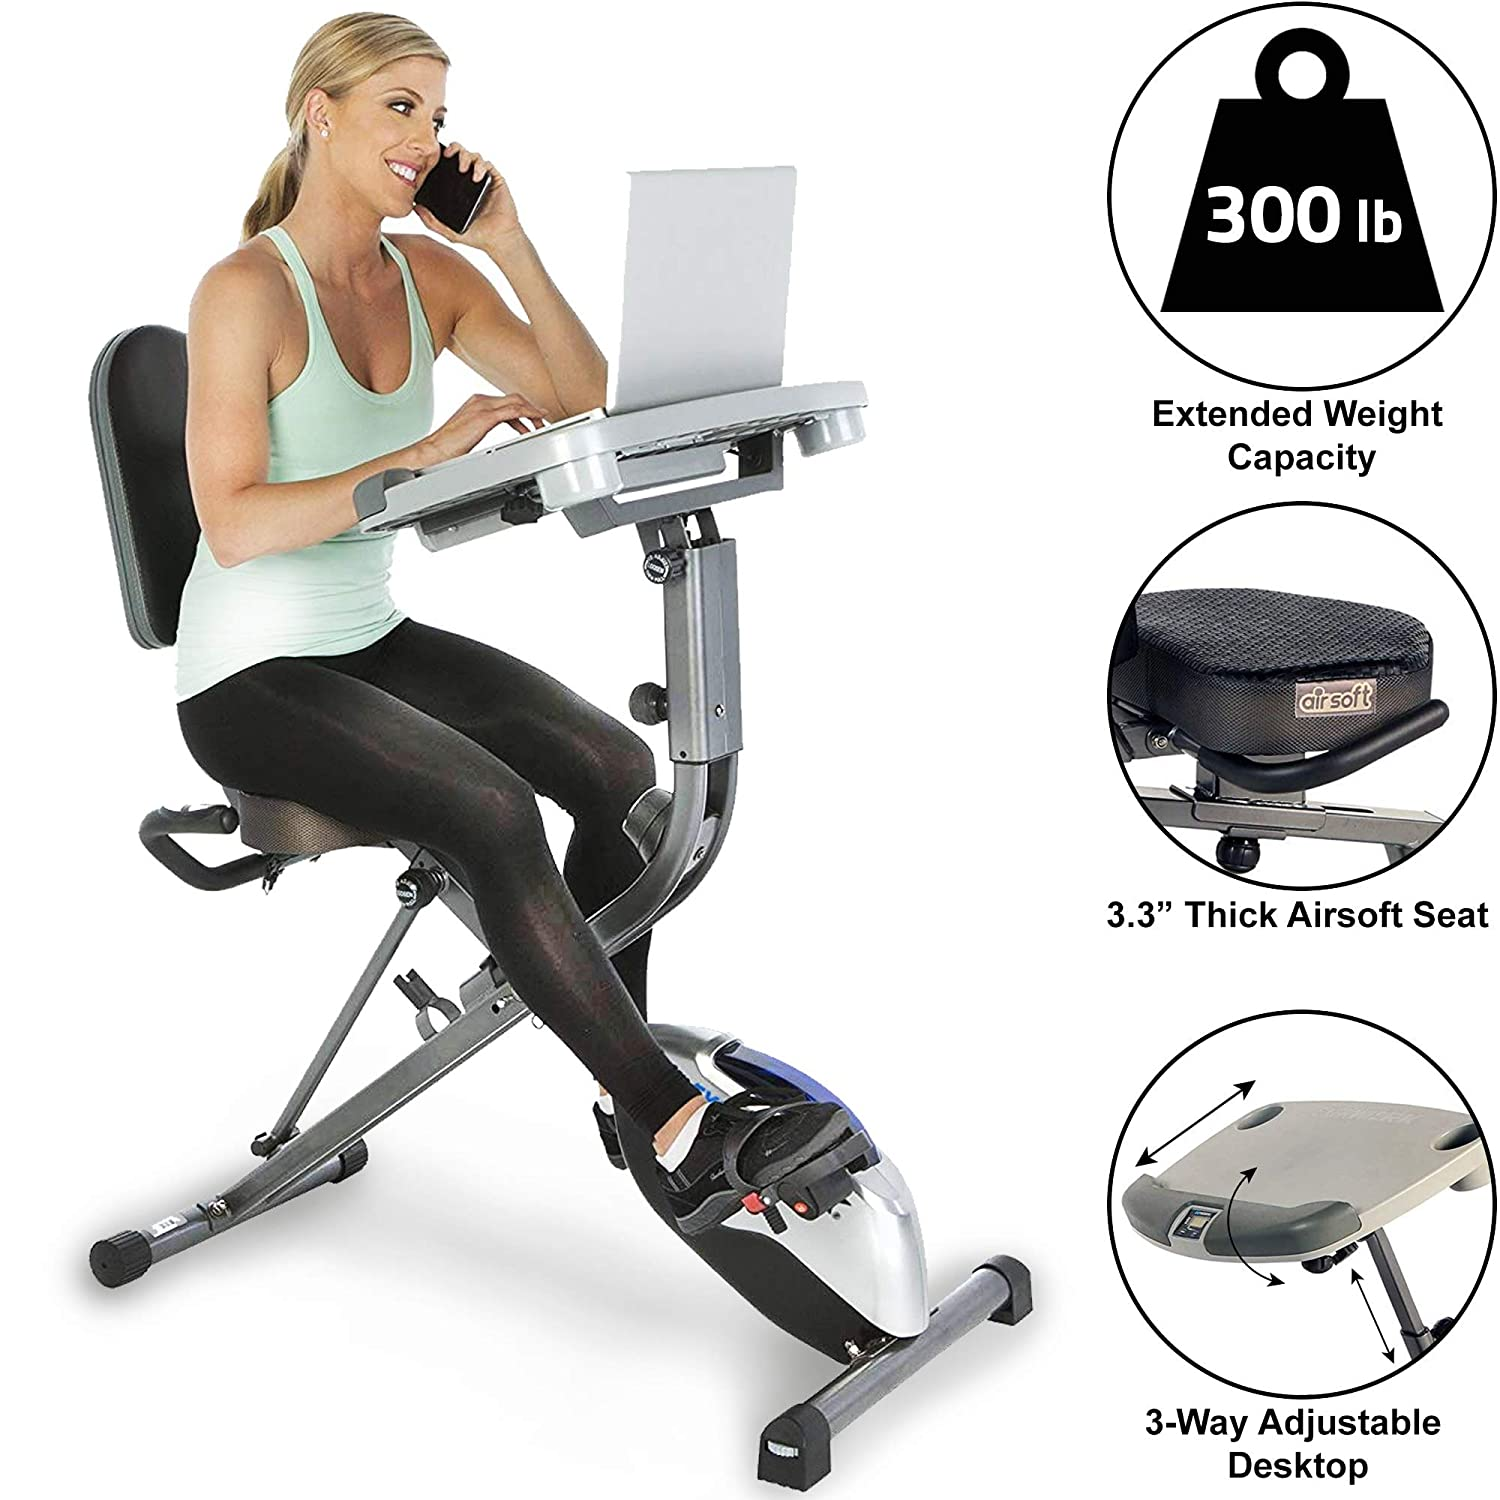 5 Best Exercise Bike For Bad Knees - Comparisons for 2020 1